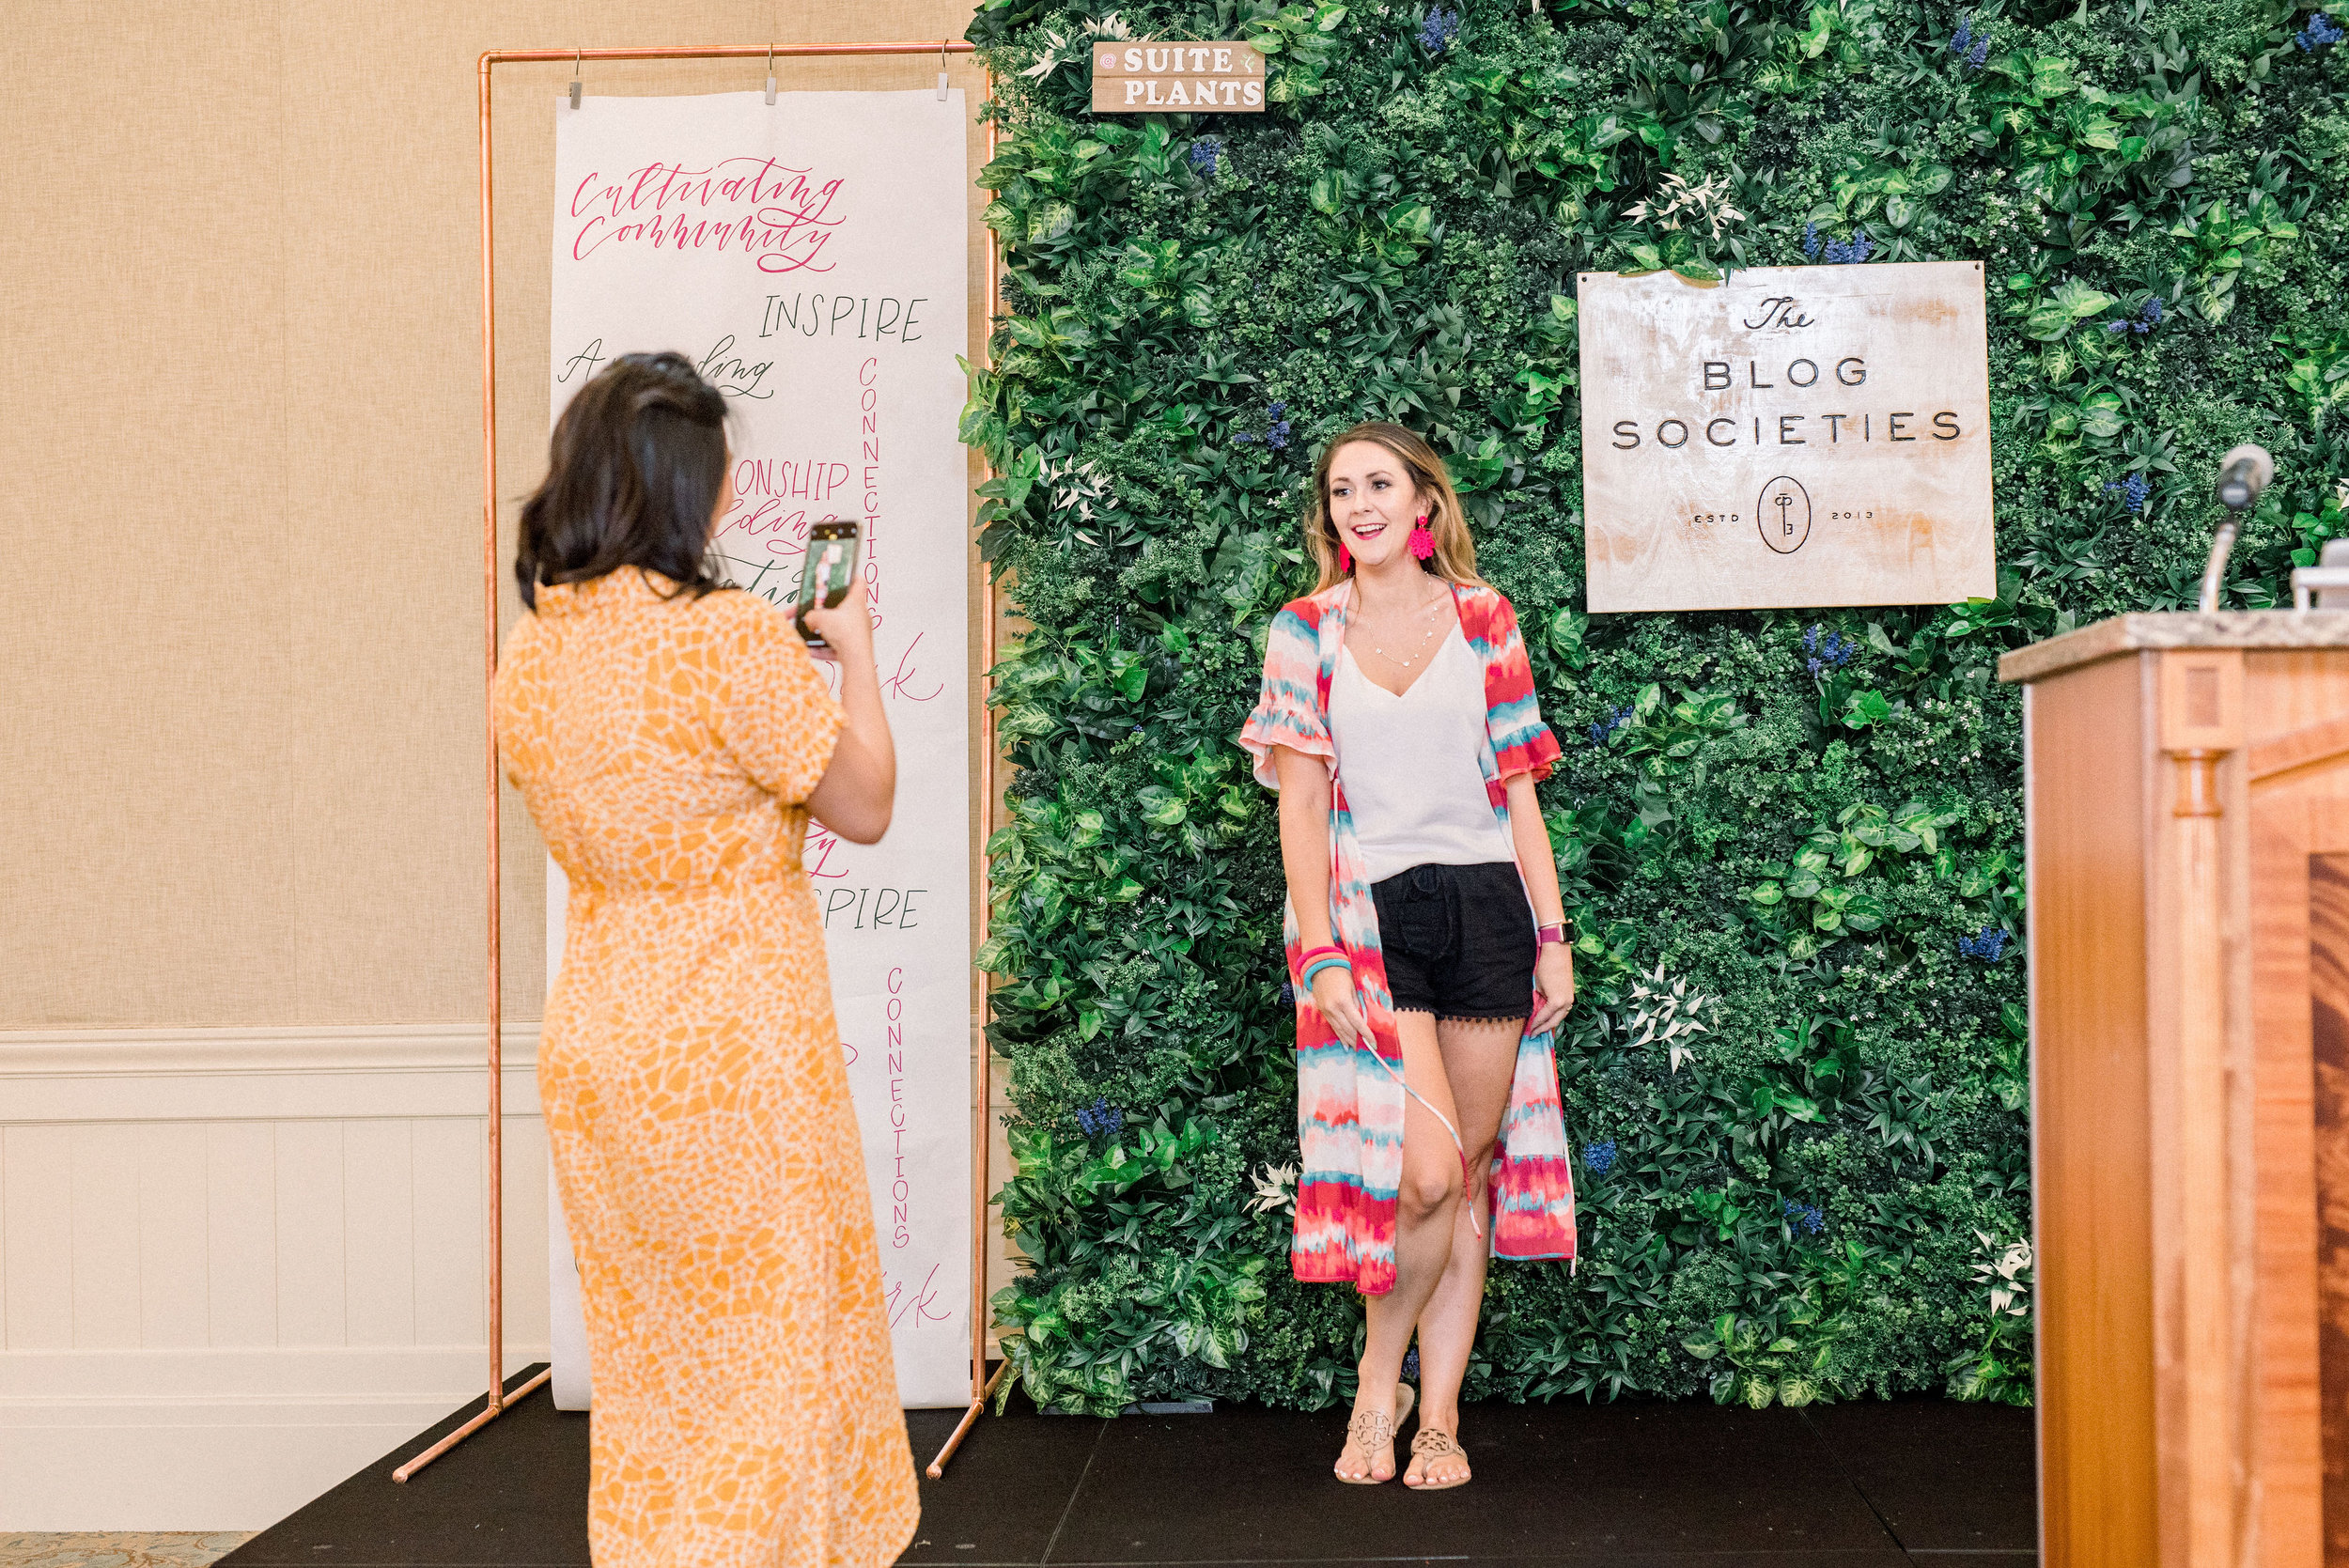 ALW Event Wall - The Blog Societies